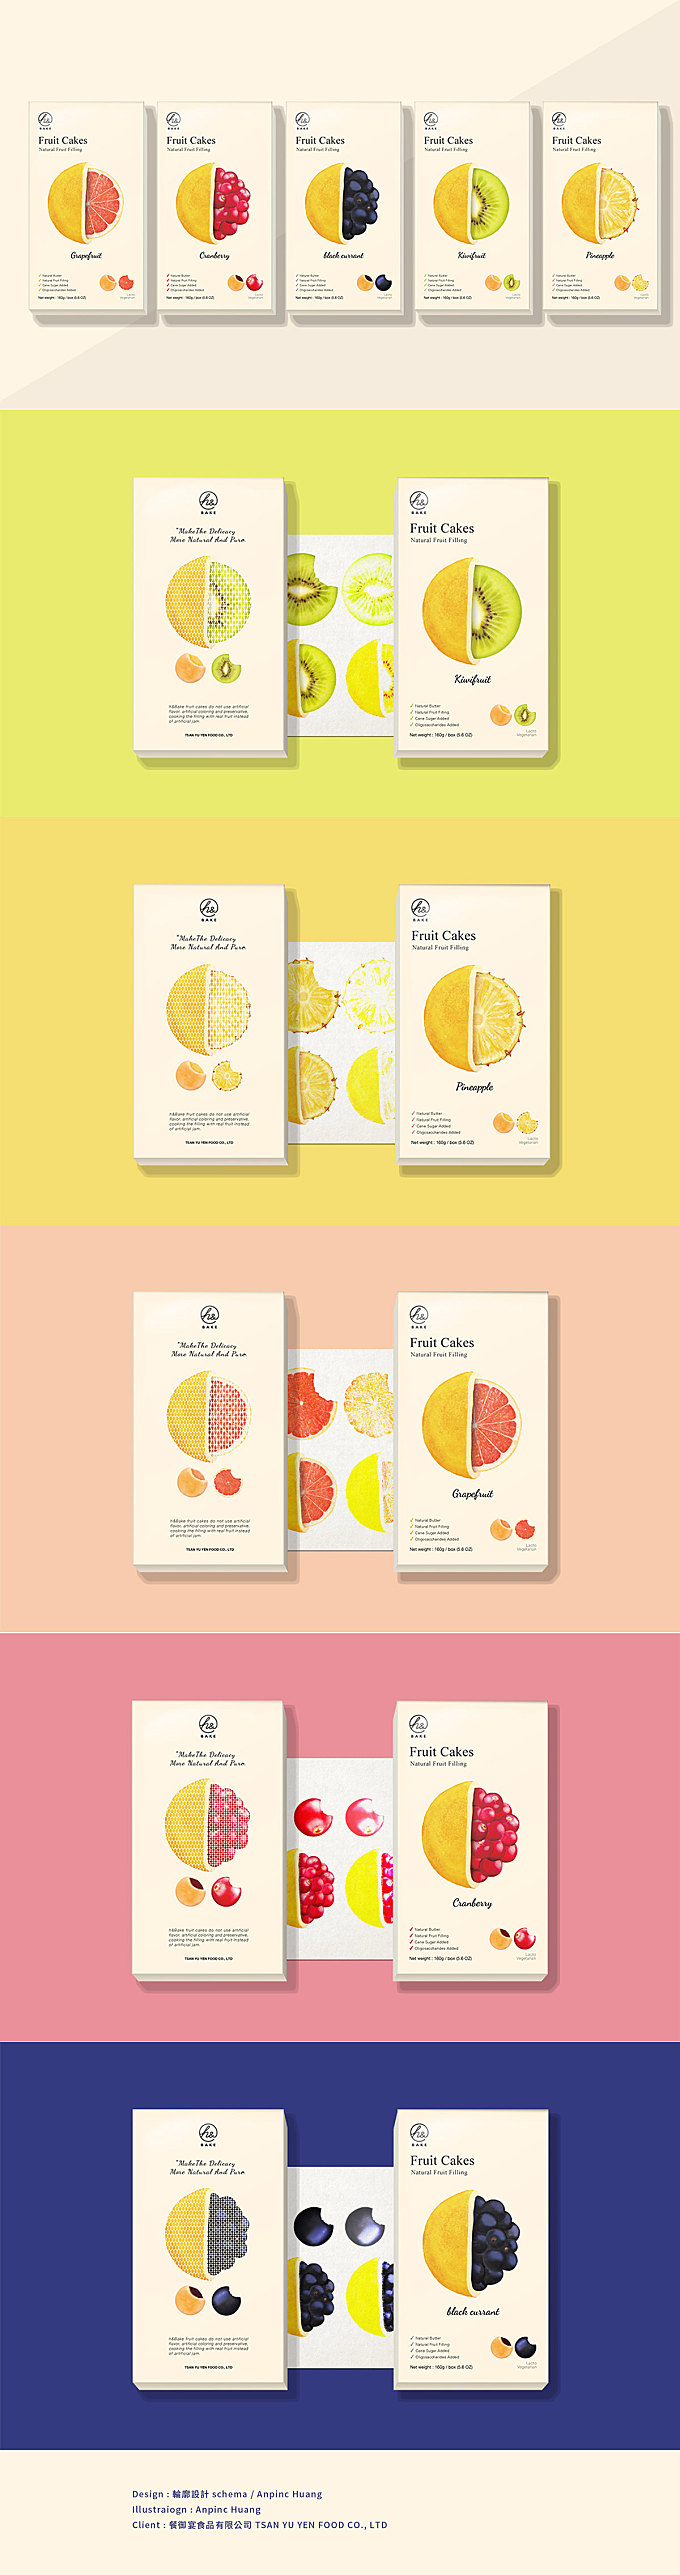 h& 水果塔系列包裝設計 / h& Fruit Cakes Packaging Design